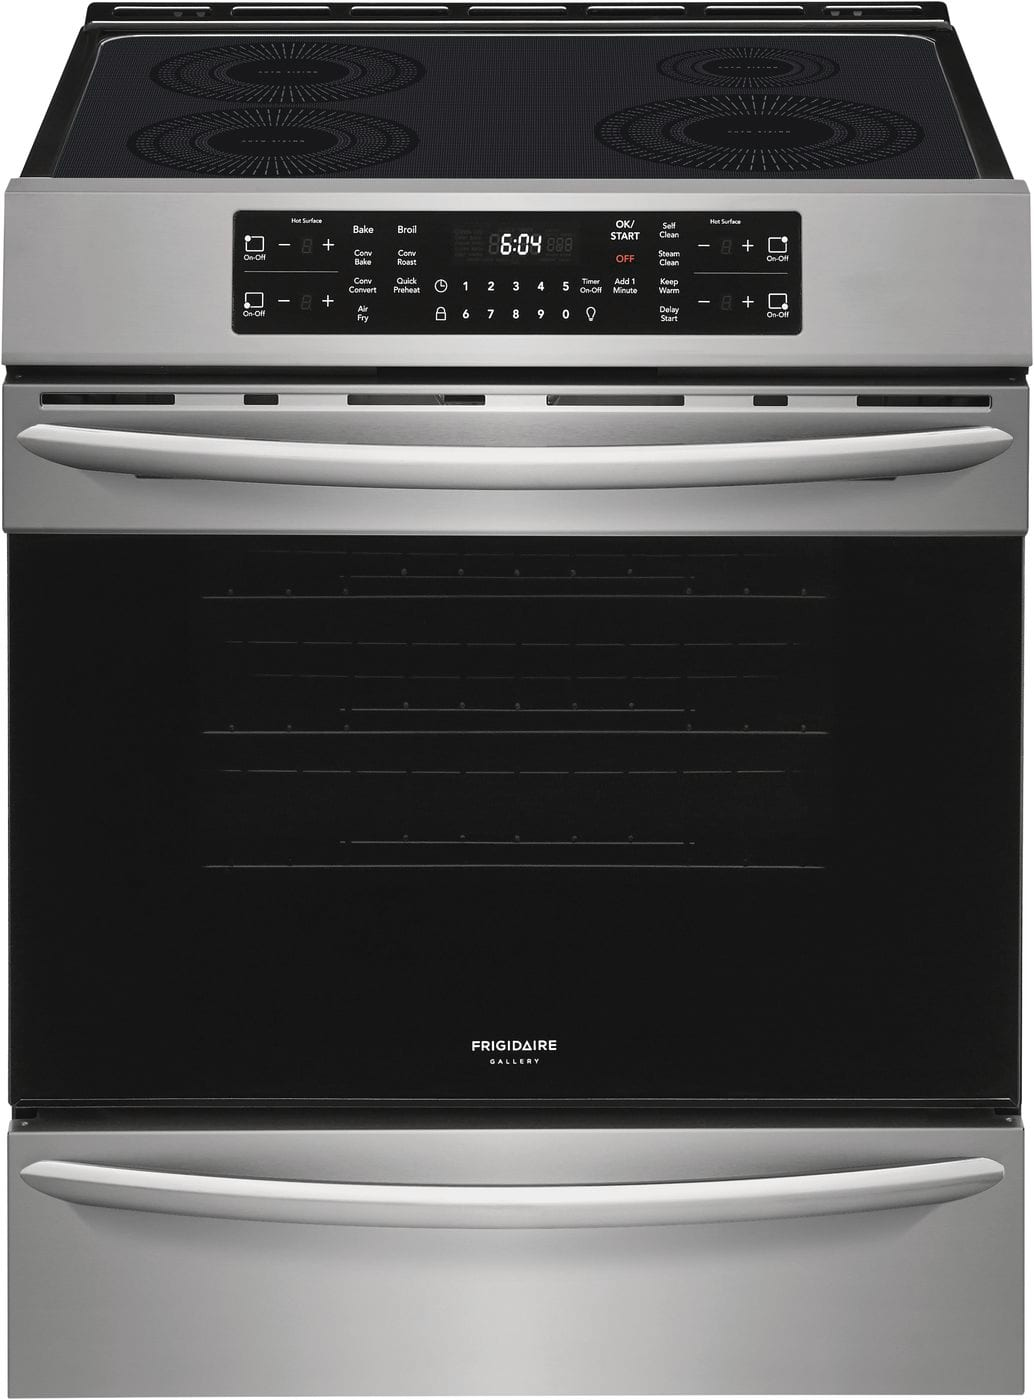 "Frigidaire 30"" Front Control Induction Range with Air Fry"